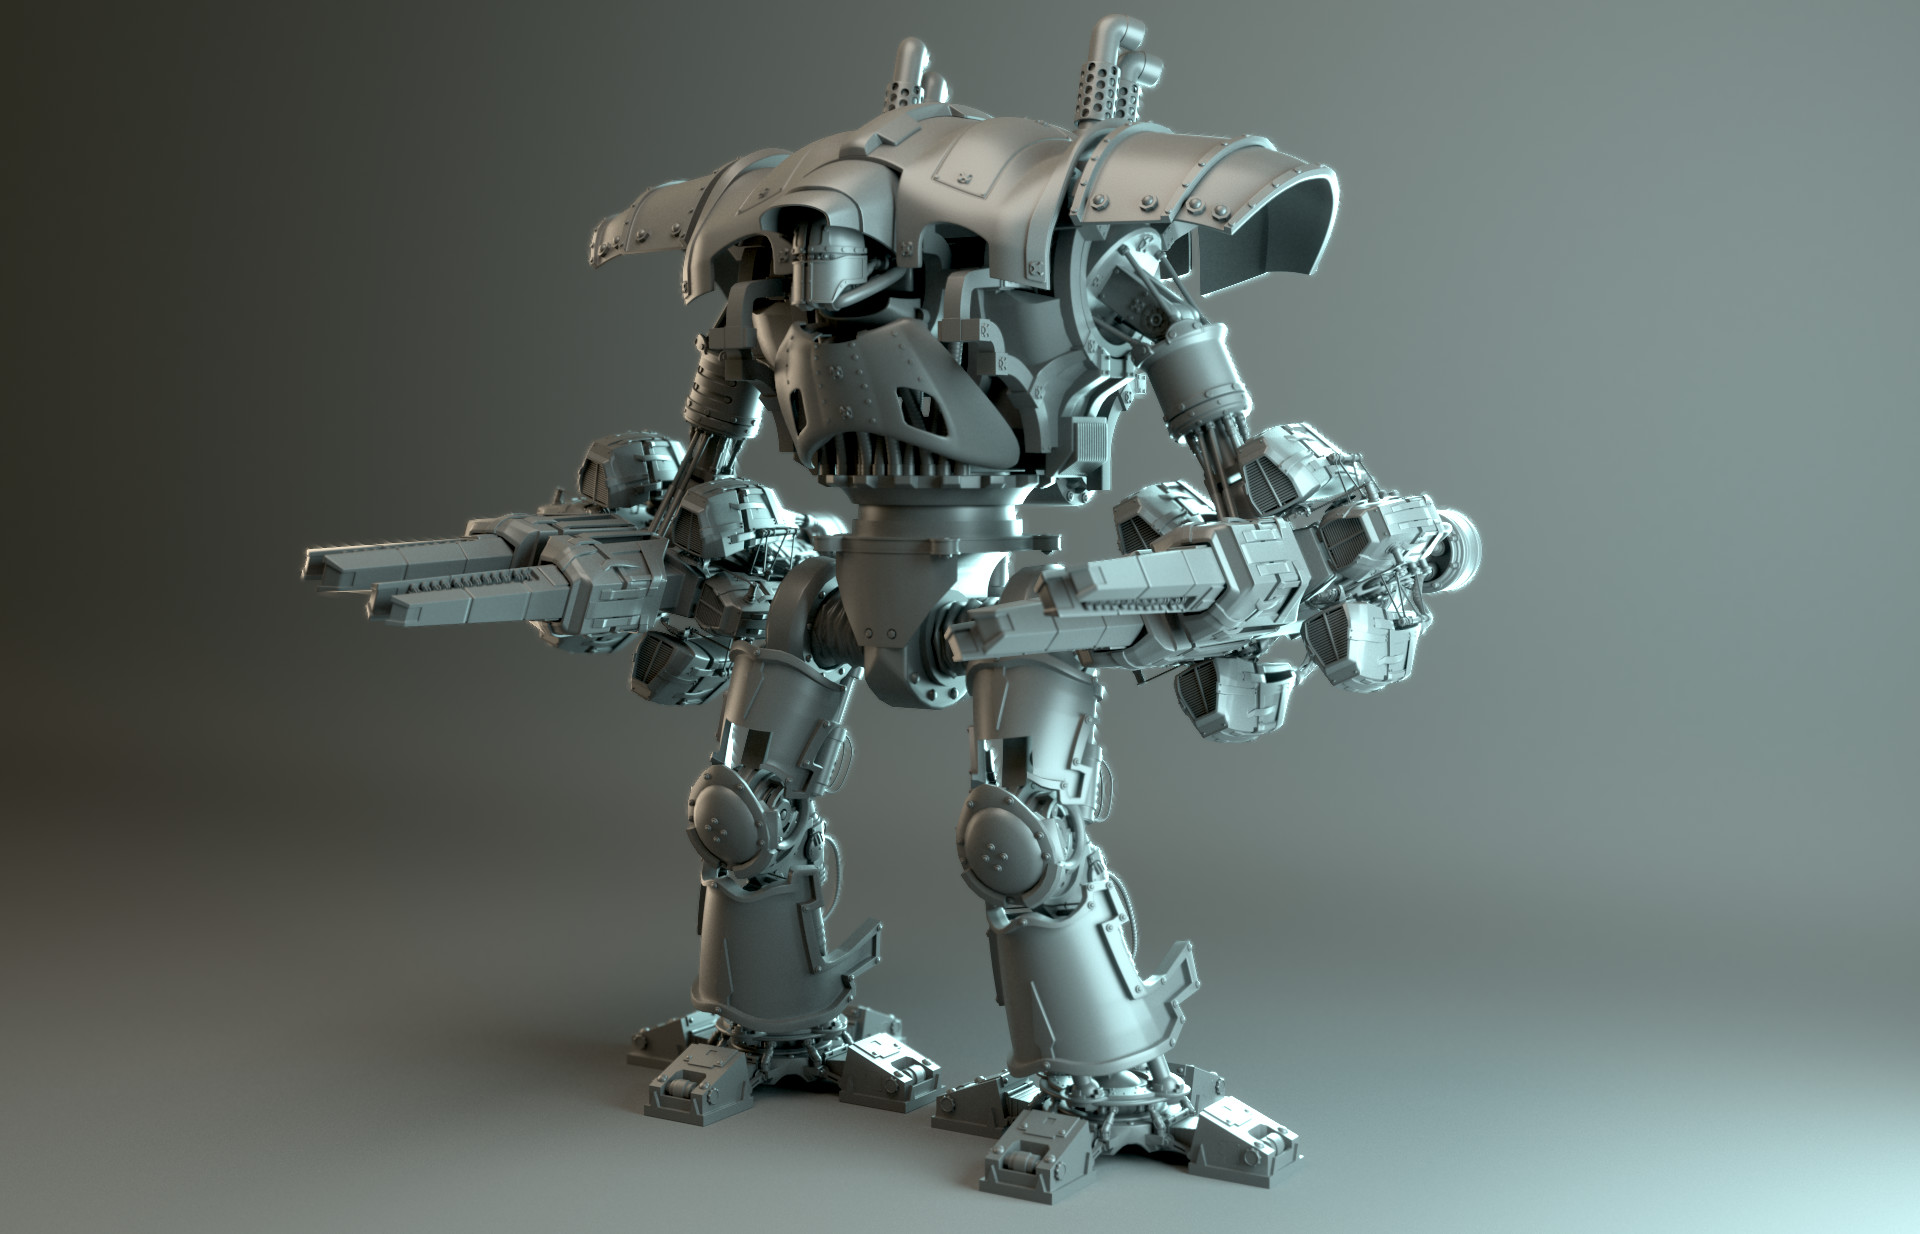 Mech lighting (mech by cris robson - shared with his permission)